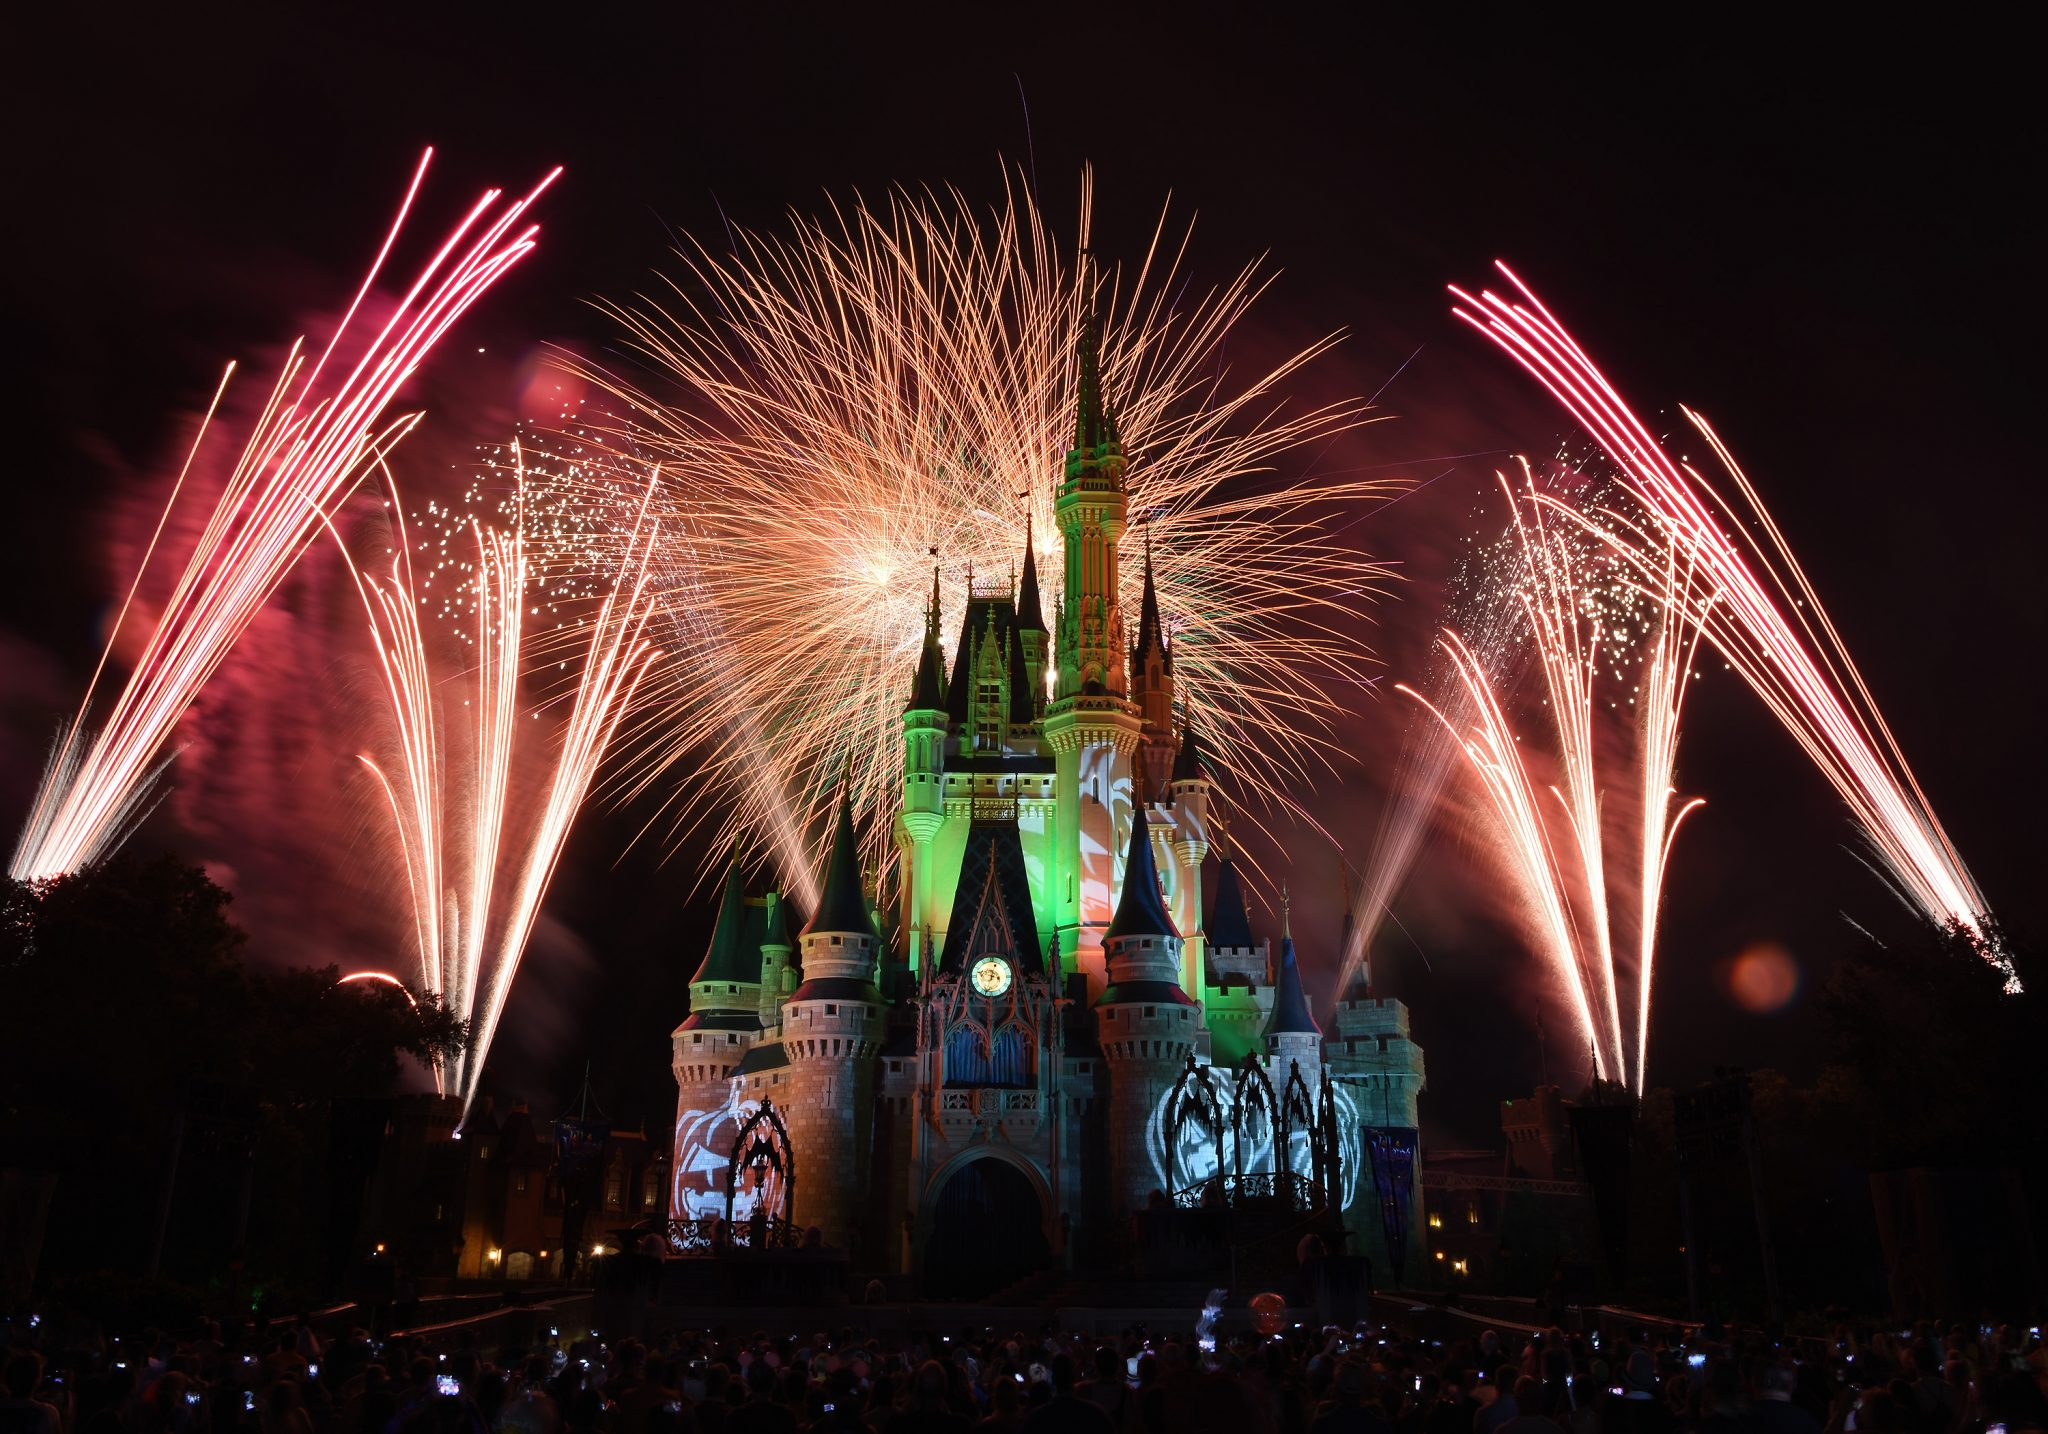 "Orange fireworks explode over Cinderella Castle while illuminated pumpkins are projected with light during the ""Happy HalloWishes"" fireworks show at MickeyÕs Not-So-Scary Halloween Party. The family-friendly after-hours event offers trick-or-treating, meet and greets with favorite characters in costume, plus the must-see ""Mickey's Boo-to-You Halloween Parade"" and ""Happy HalloWishes"" fireworks display. Mickey's Not-So-Scary Halloween Party is a special ticket event and takes place on select nights each fall at Walt Disney World Resort in Lake Buena Vista, Fla. (Todd Anderson, photographer)"